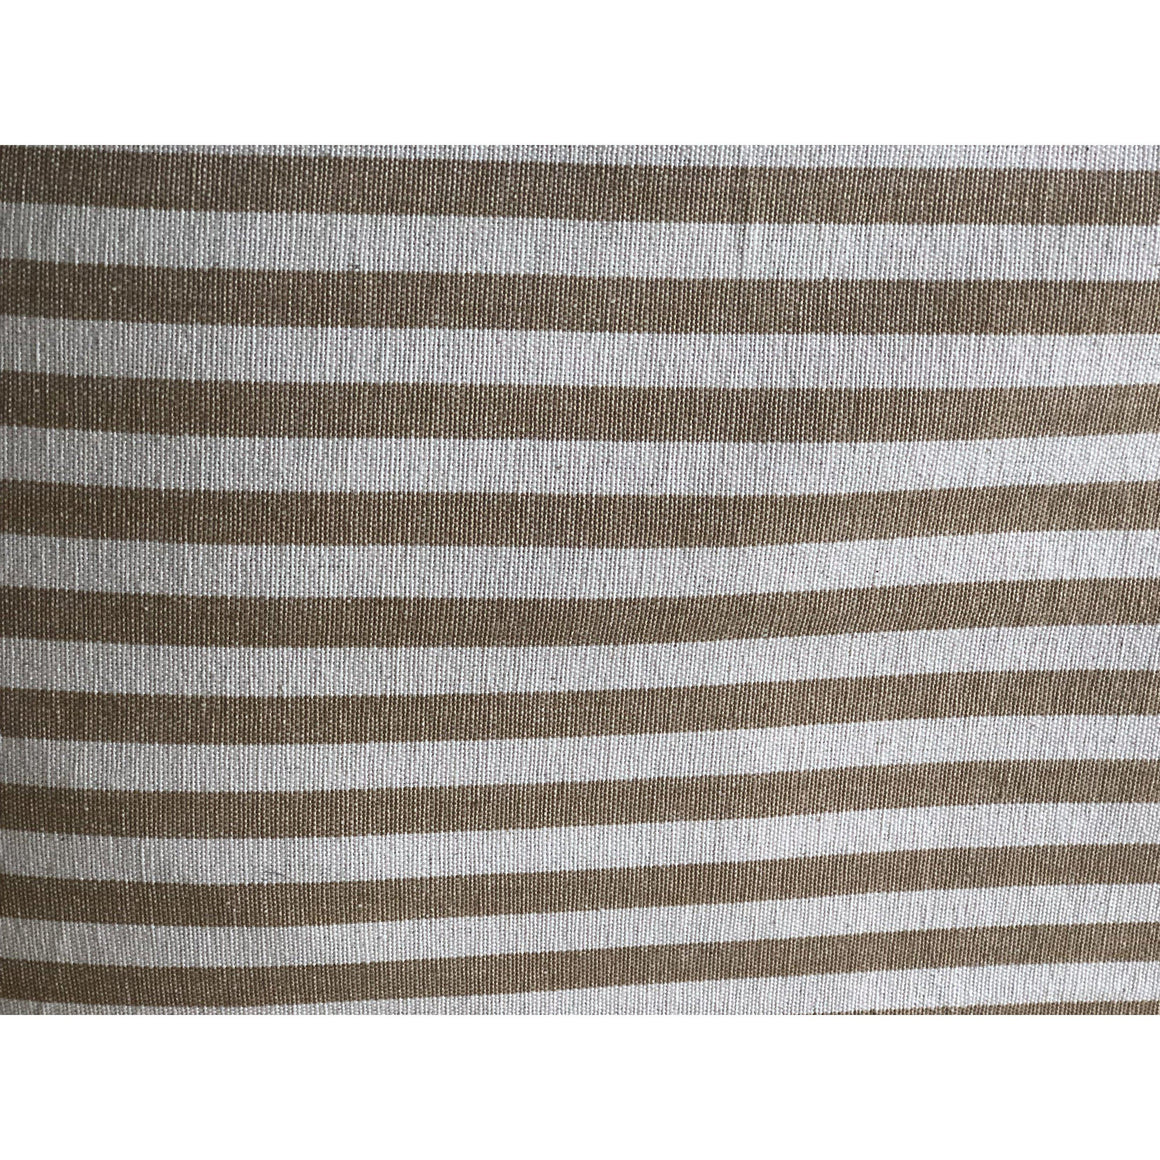 Ticking Stripe dog bed cover , beige and Ivory striped pet bed cover, Dog Bed Farmhouse Bed Covers for All Sizes